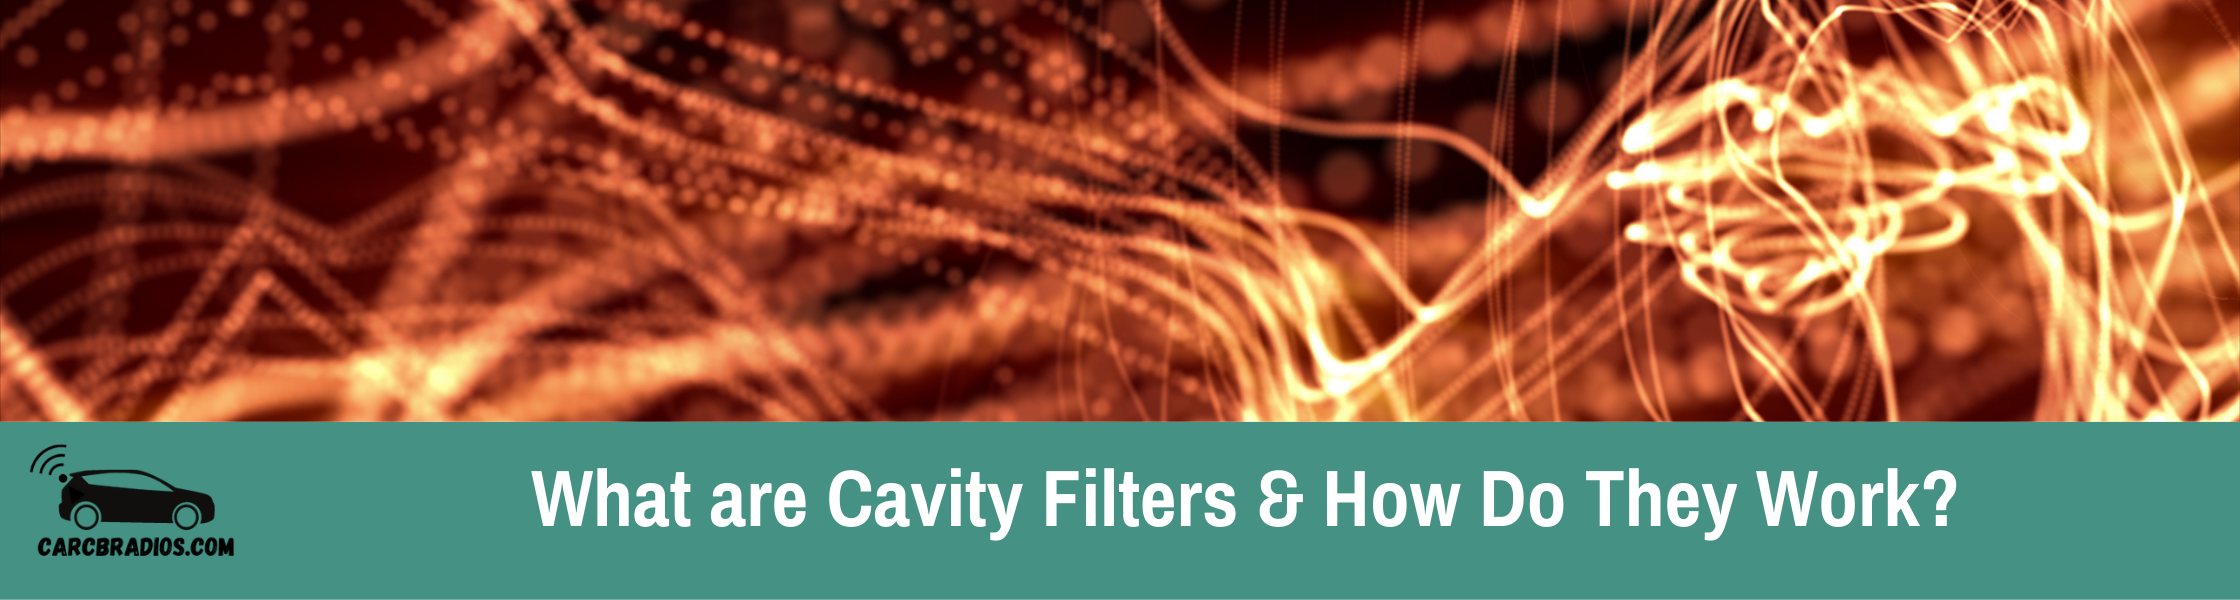 What are Cavity Filters & How Do They Work?: A cavity filter is a form of a resonant circuit that allows only specific frequencies to go through. Notch filters, in general, are the type of filter discussed here.